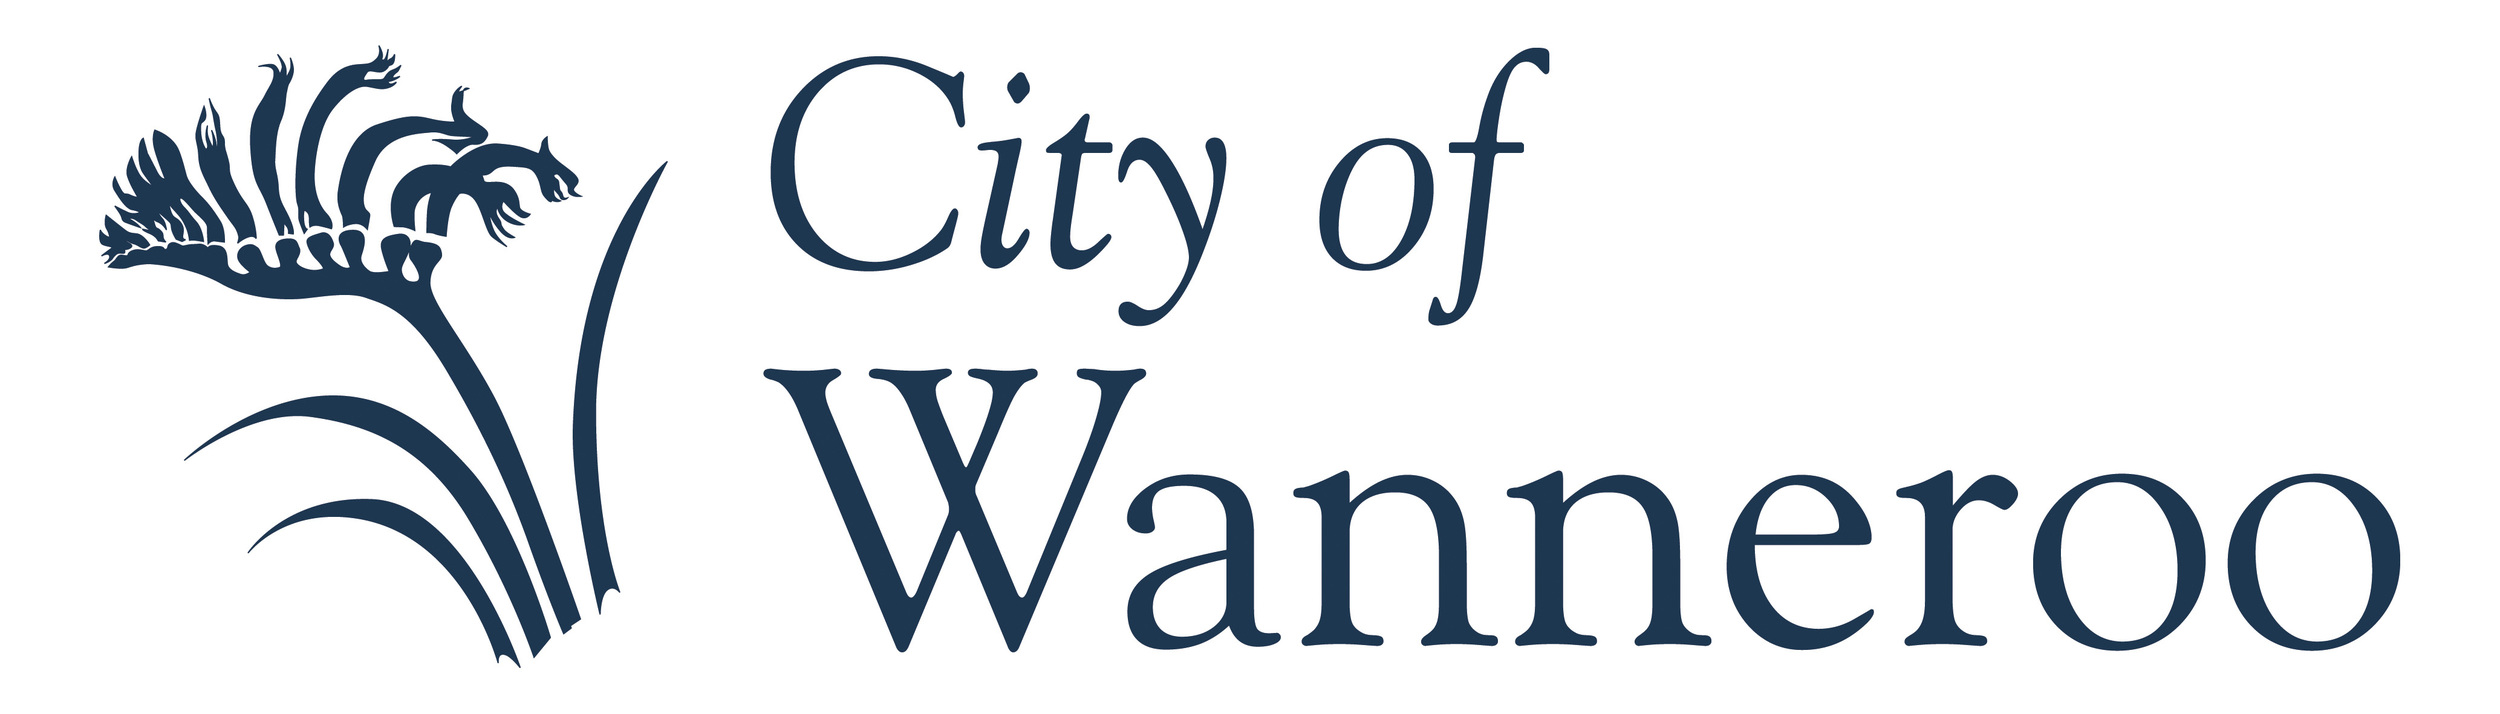 City of Waneroo Logo.jpg